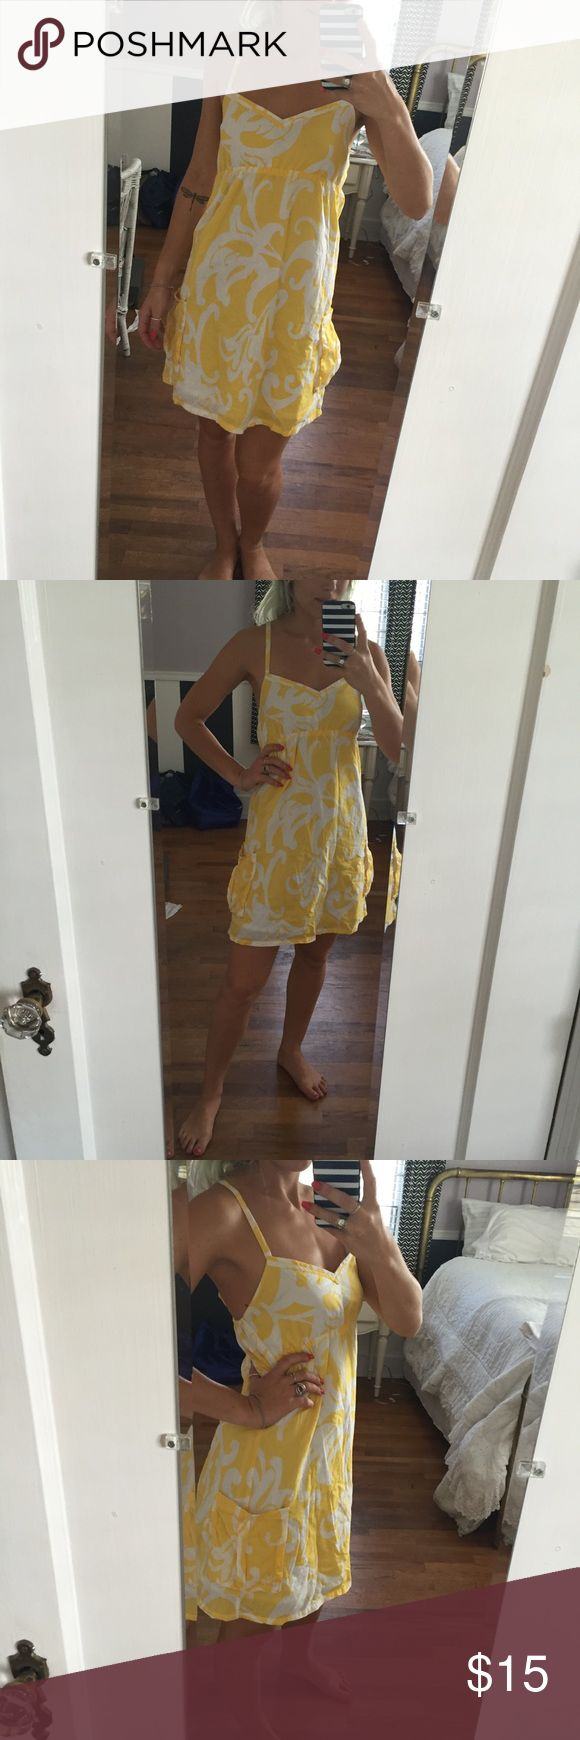 best 25 white sundress ideas only on pinterest white